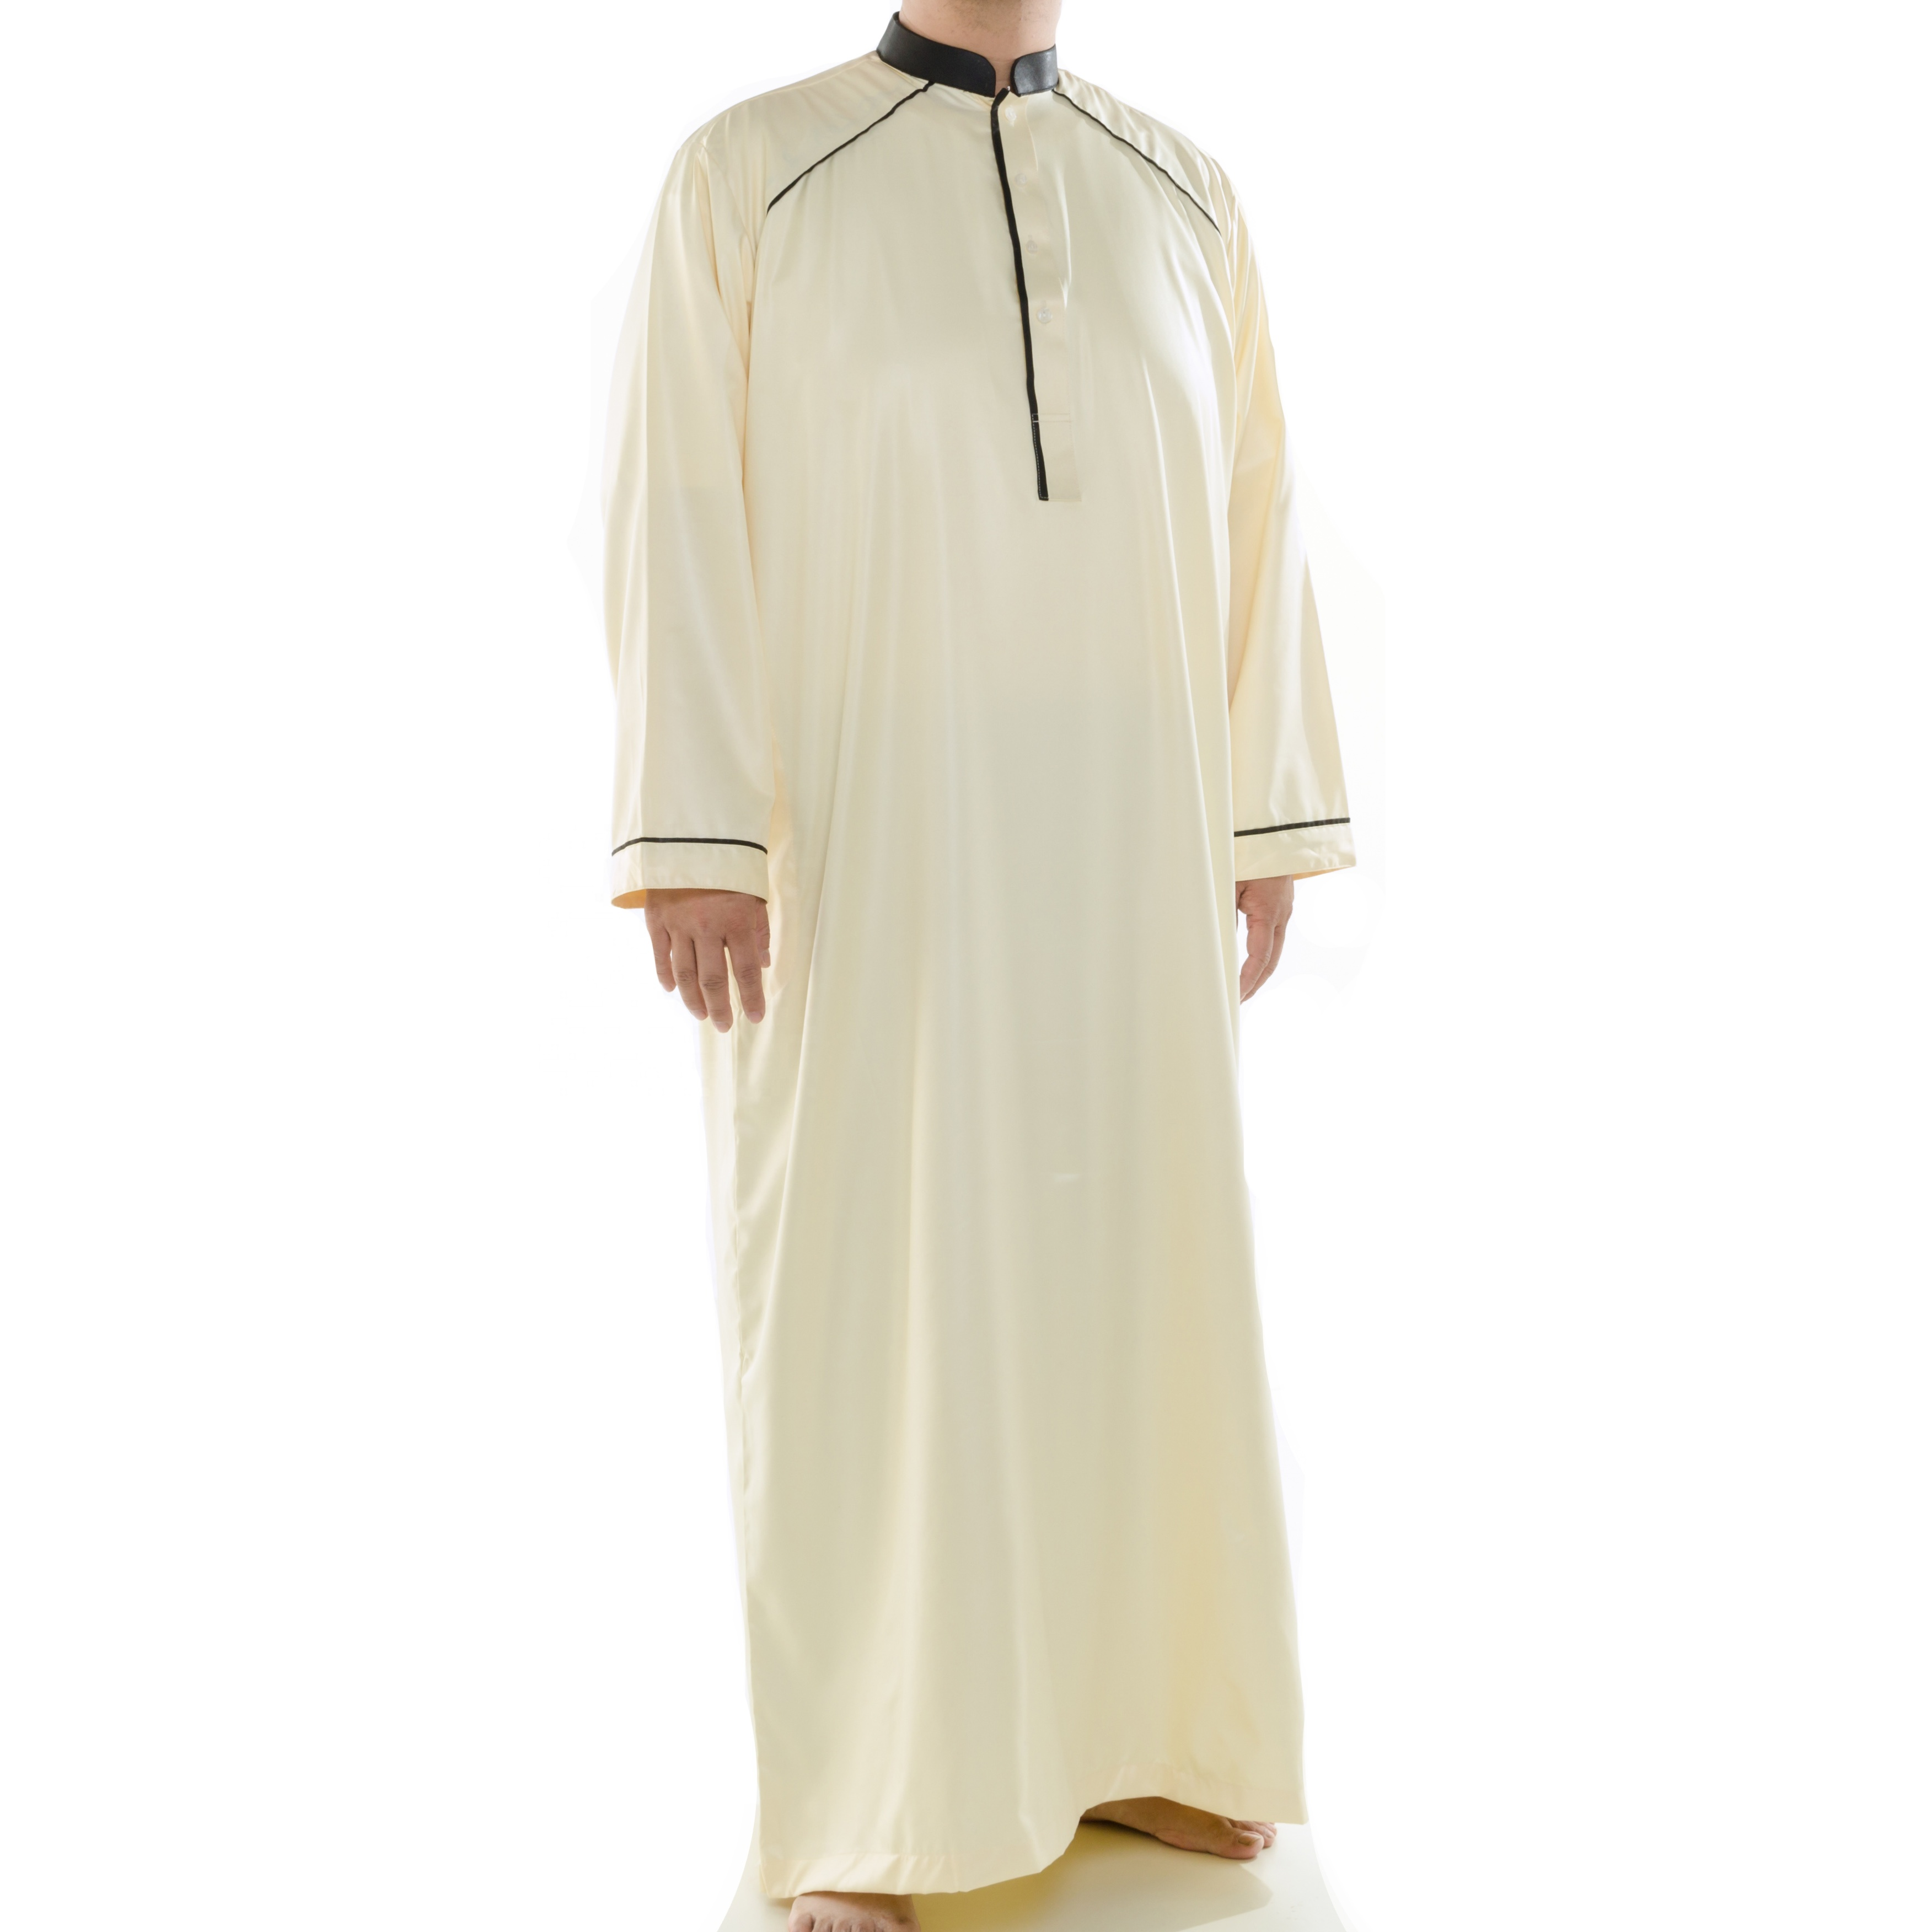 garment stock lot buyers, qatar style ,Ready goods in factory